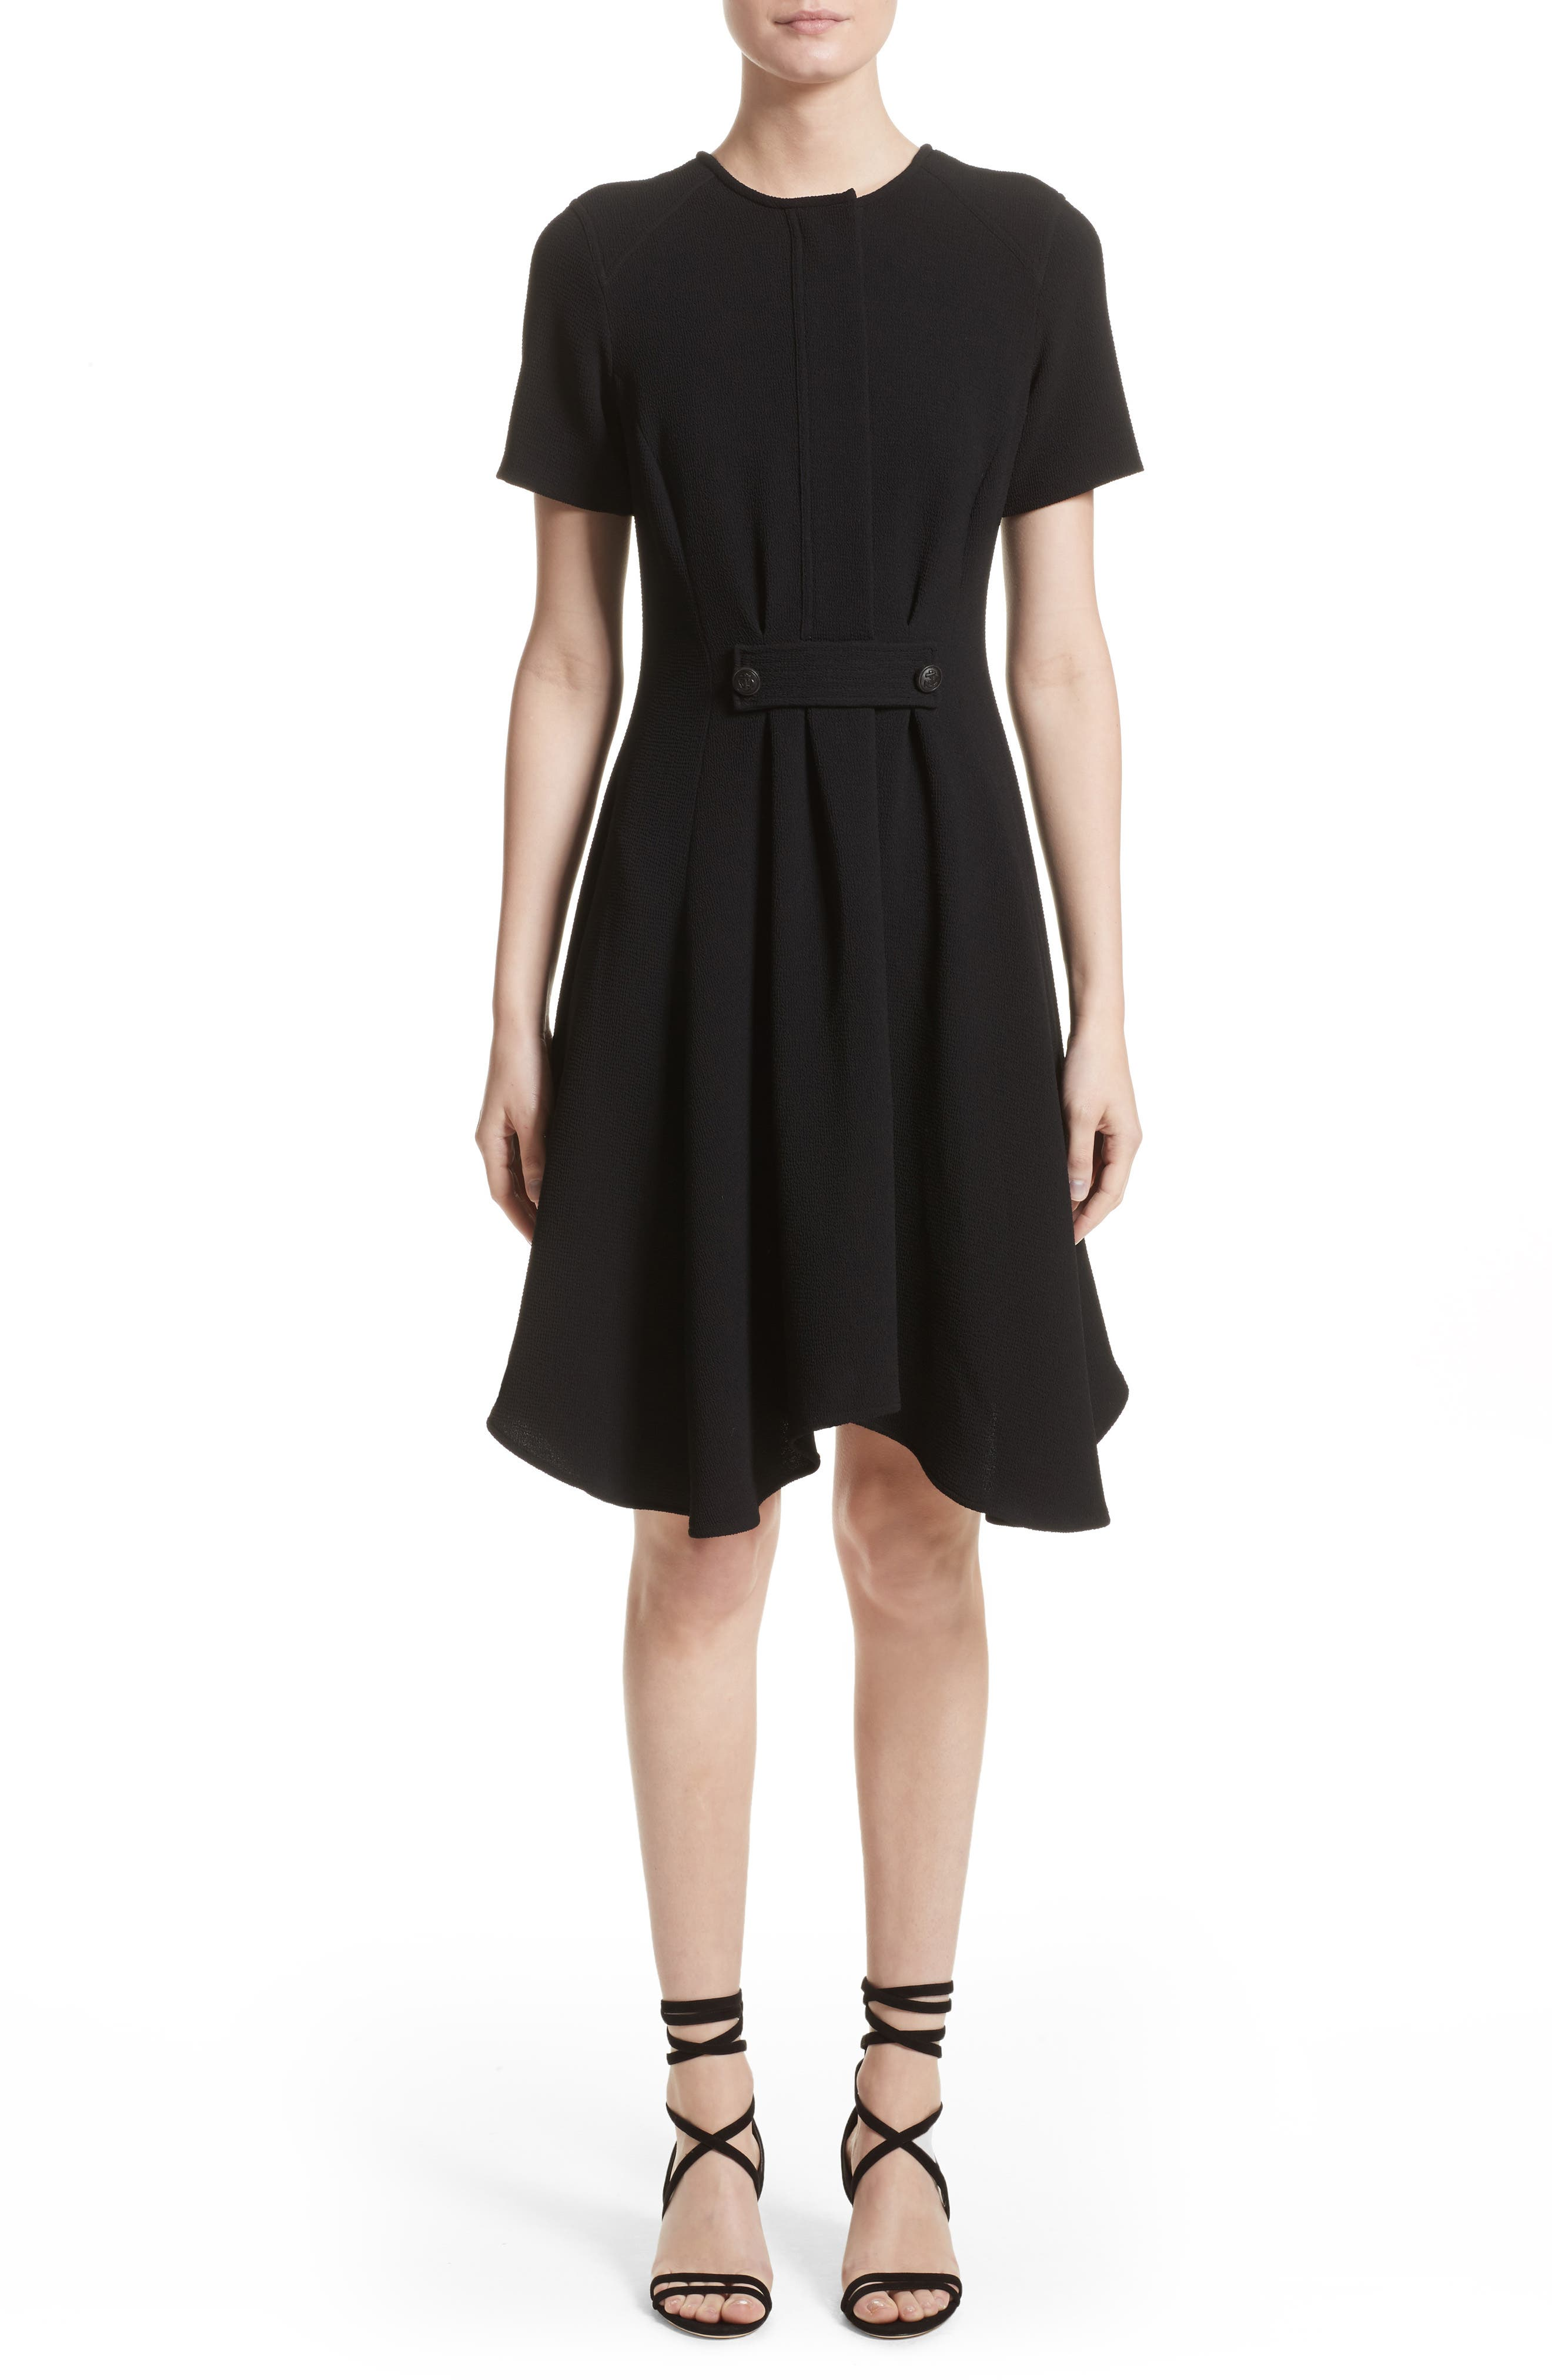 Maressa Dress,                             Main thumbnail 1, color,                             Black